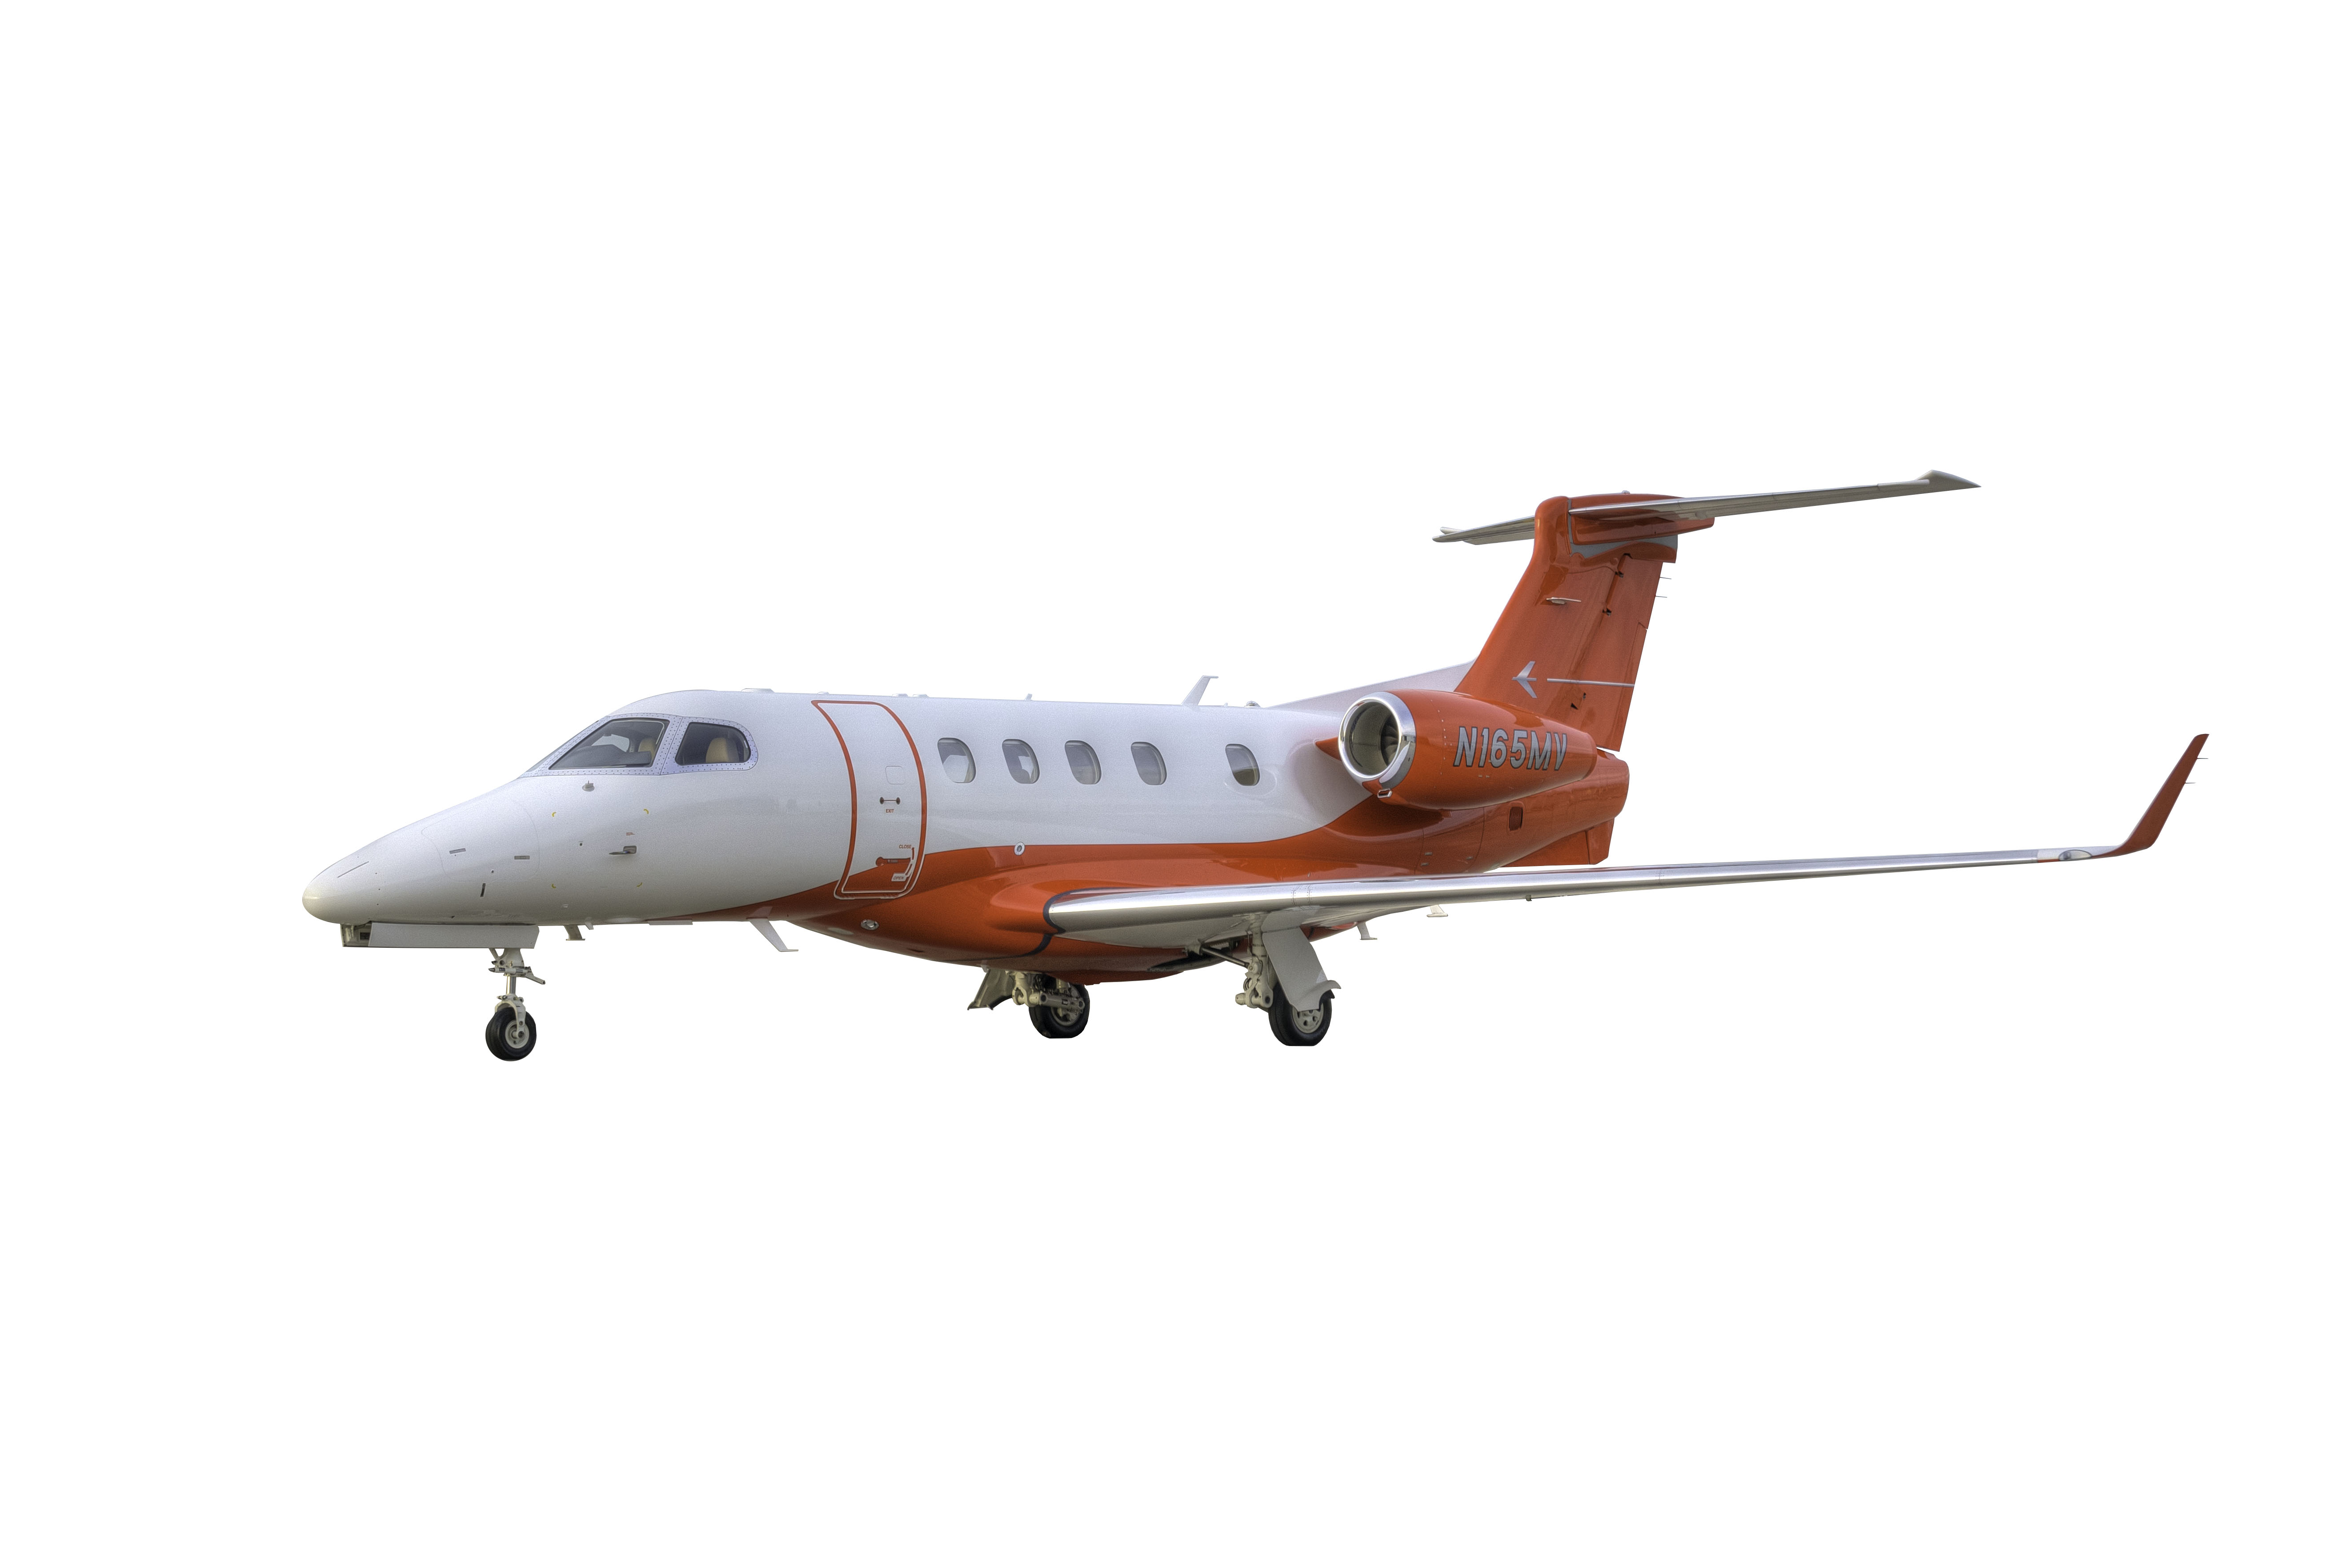 Latitude 33 Aviation's Air Charter- N165MV